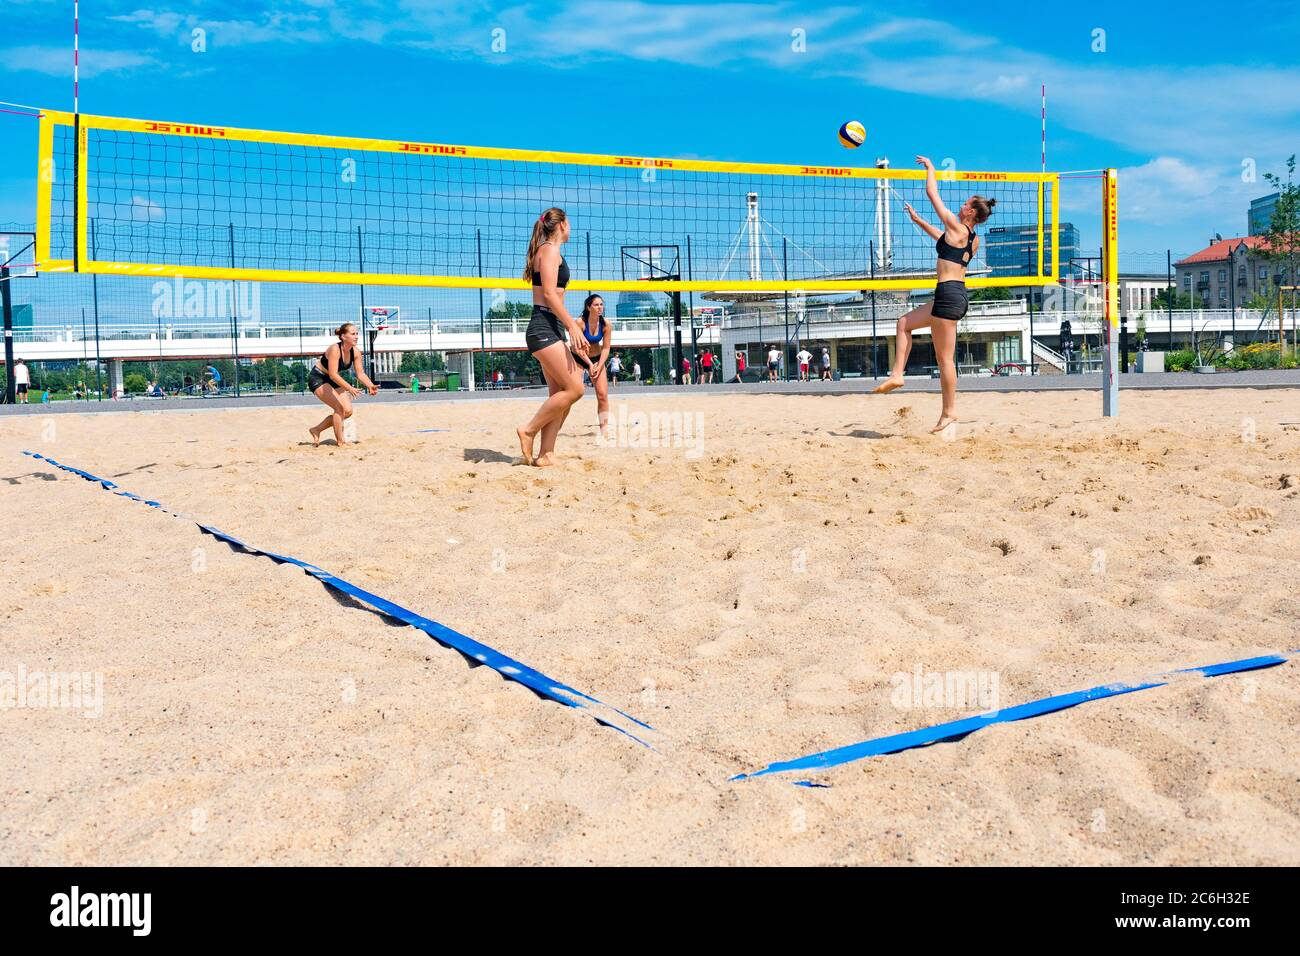 Page 3 Girls Playing Beach Volleyball High Resolution Stock Photography And Images Alamy